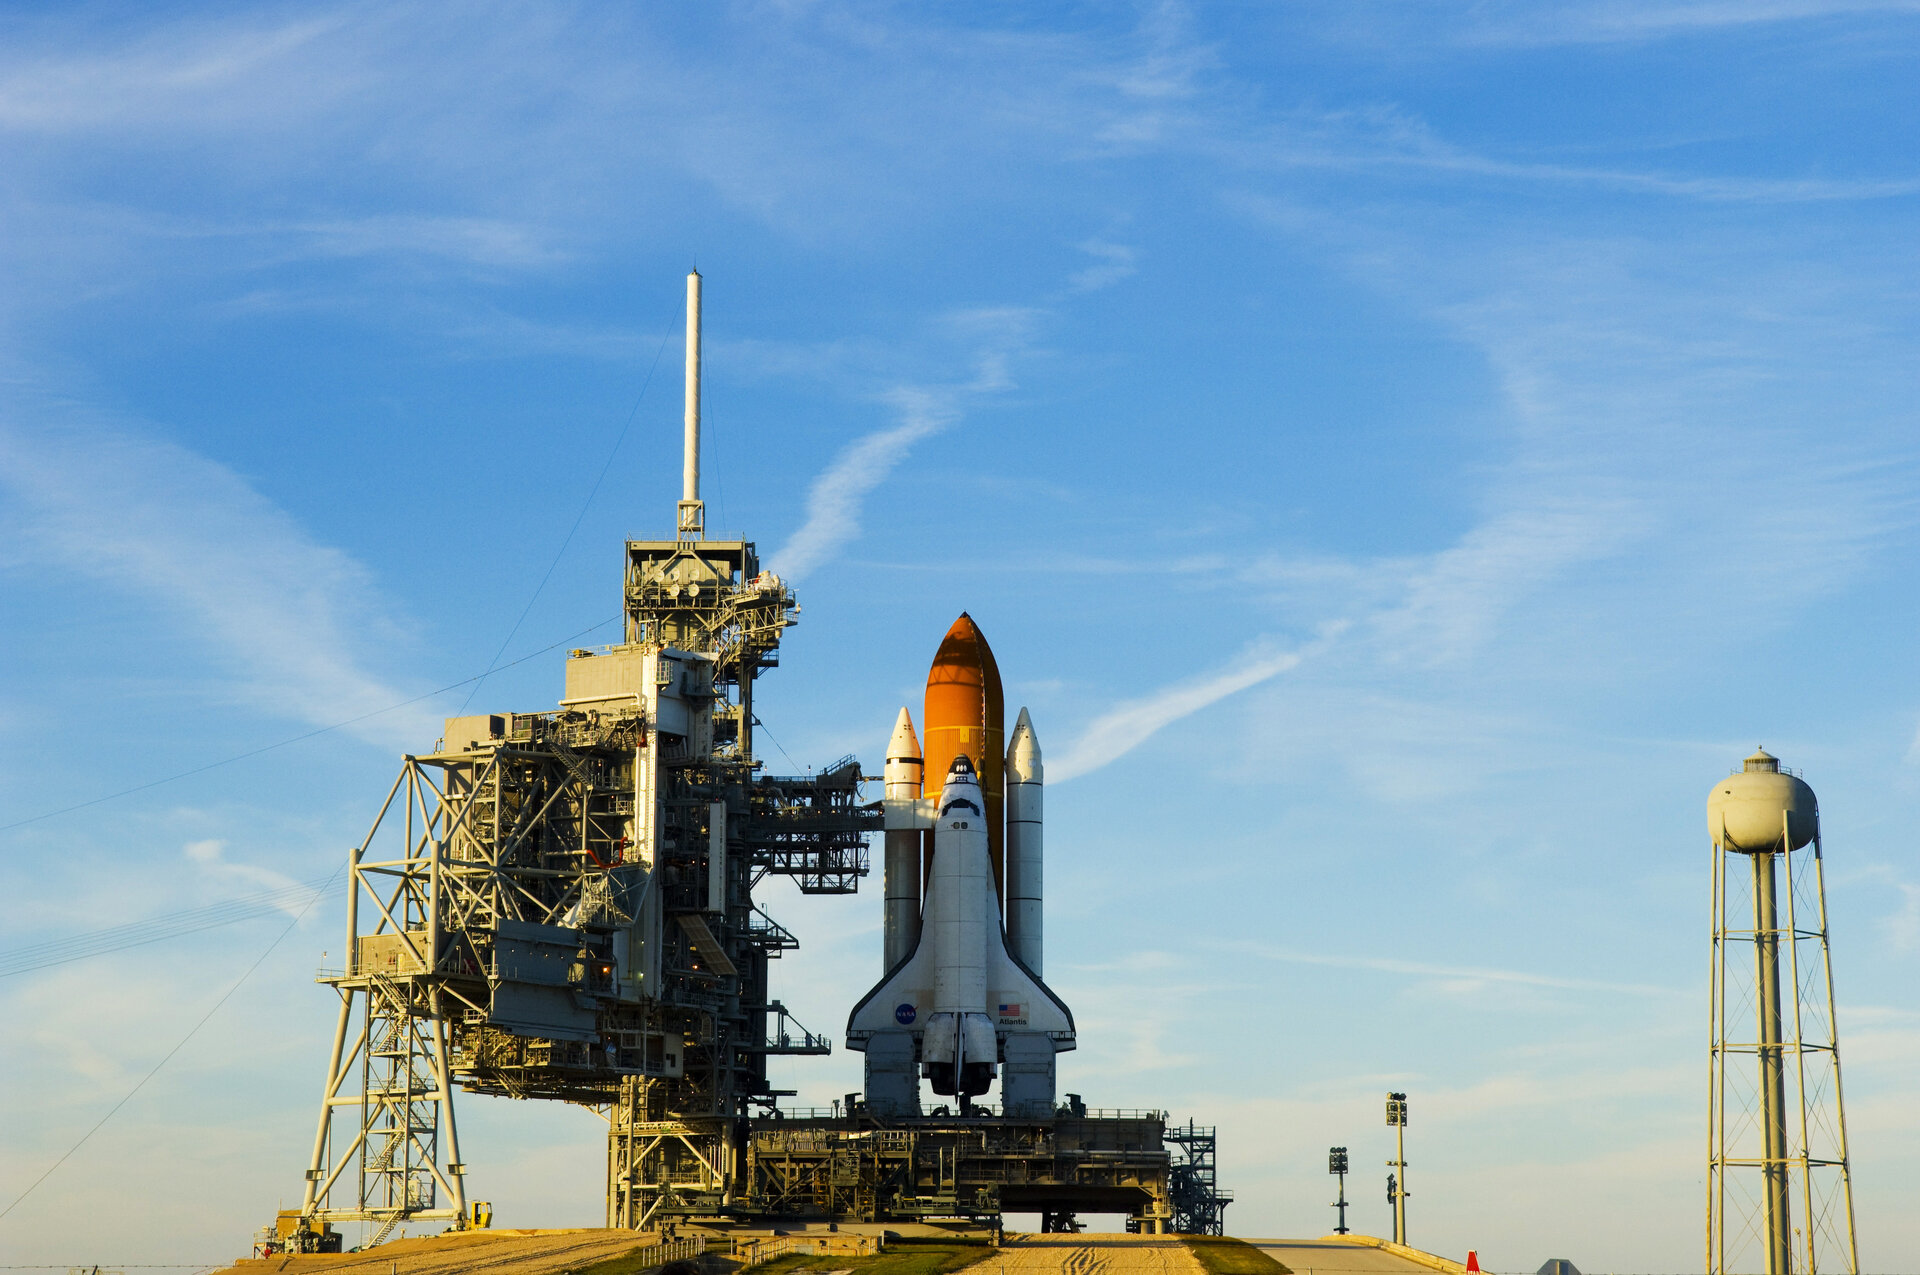 Space Shuttle Atlantis on the launch pad